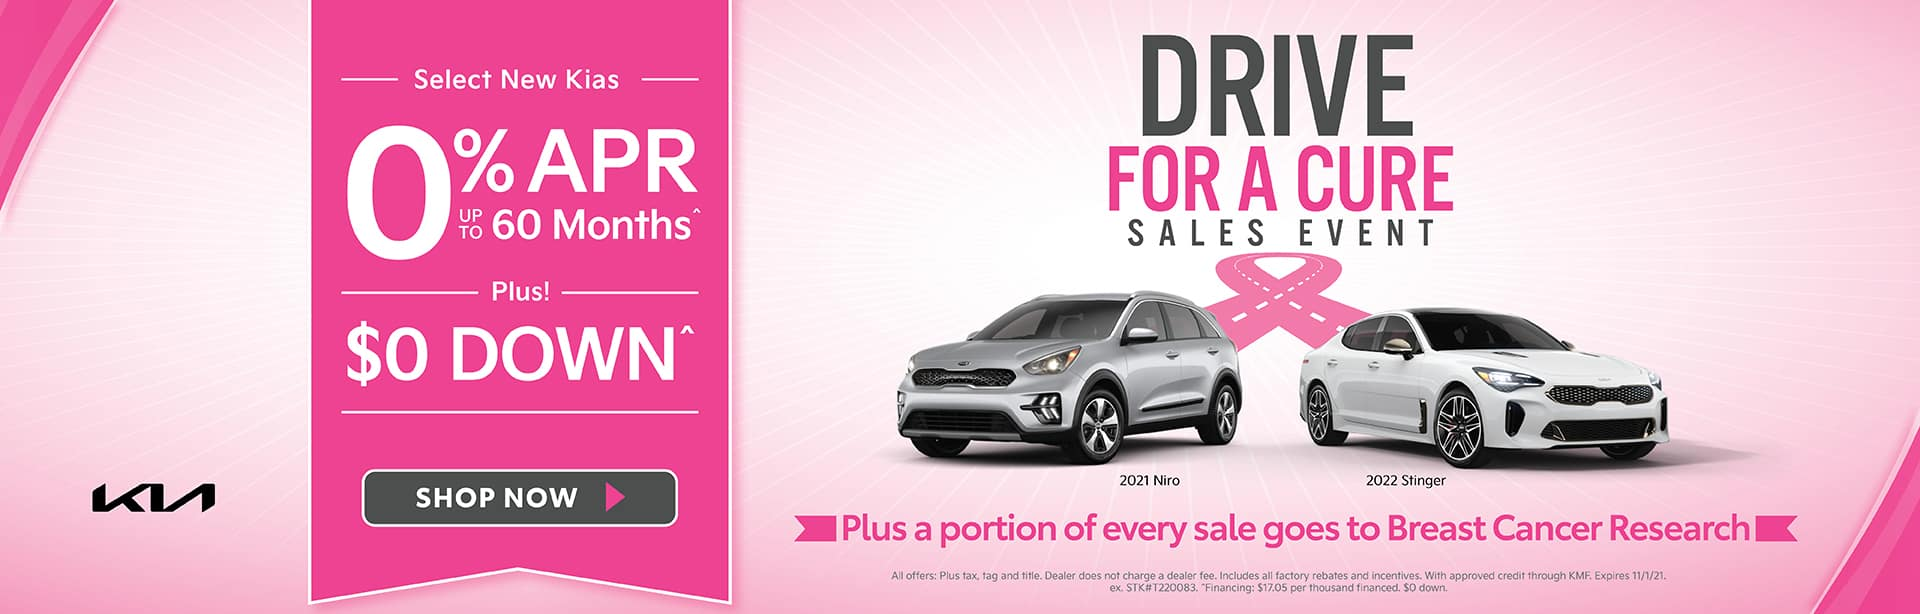 Select New Kias 0% APR for up to 60 Months